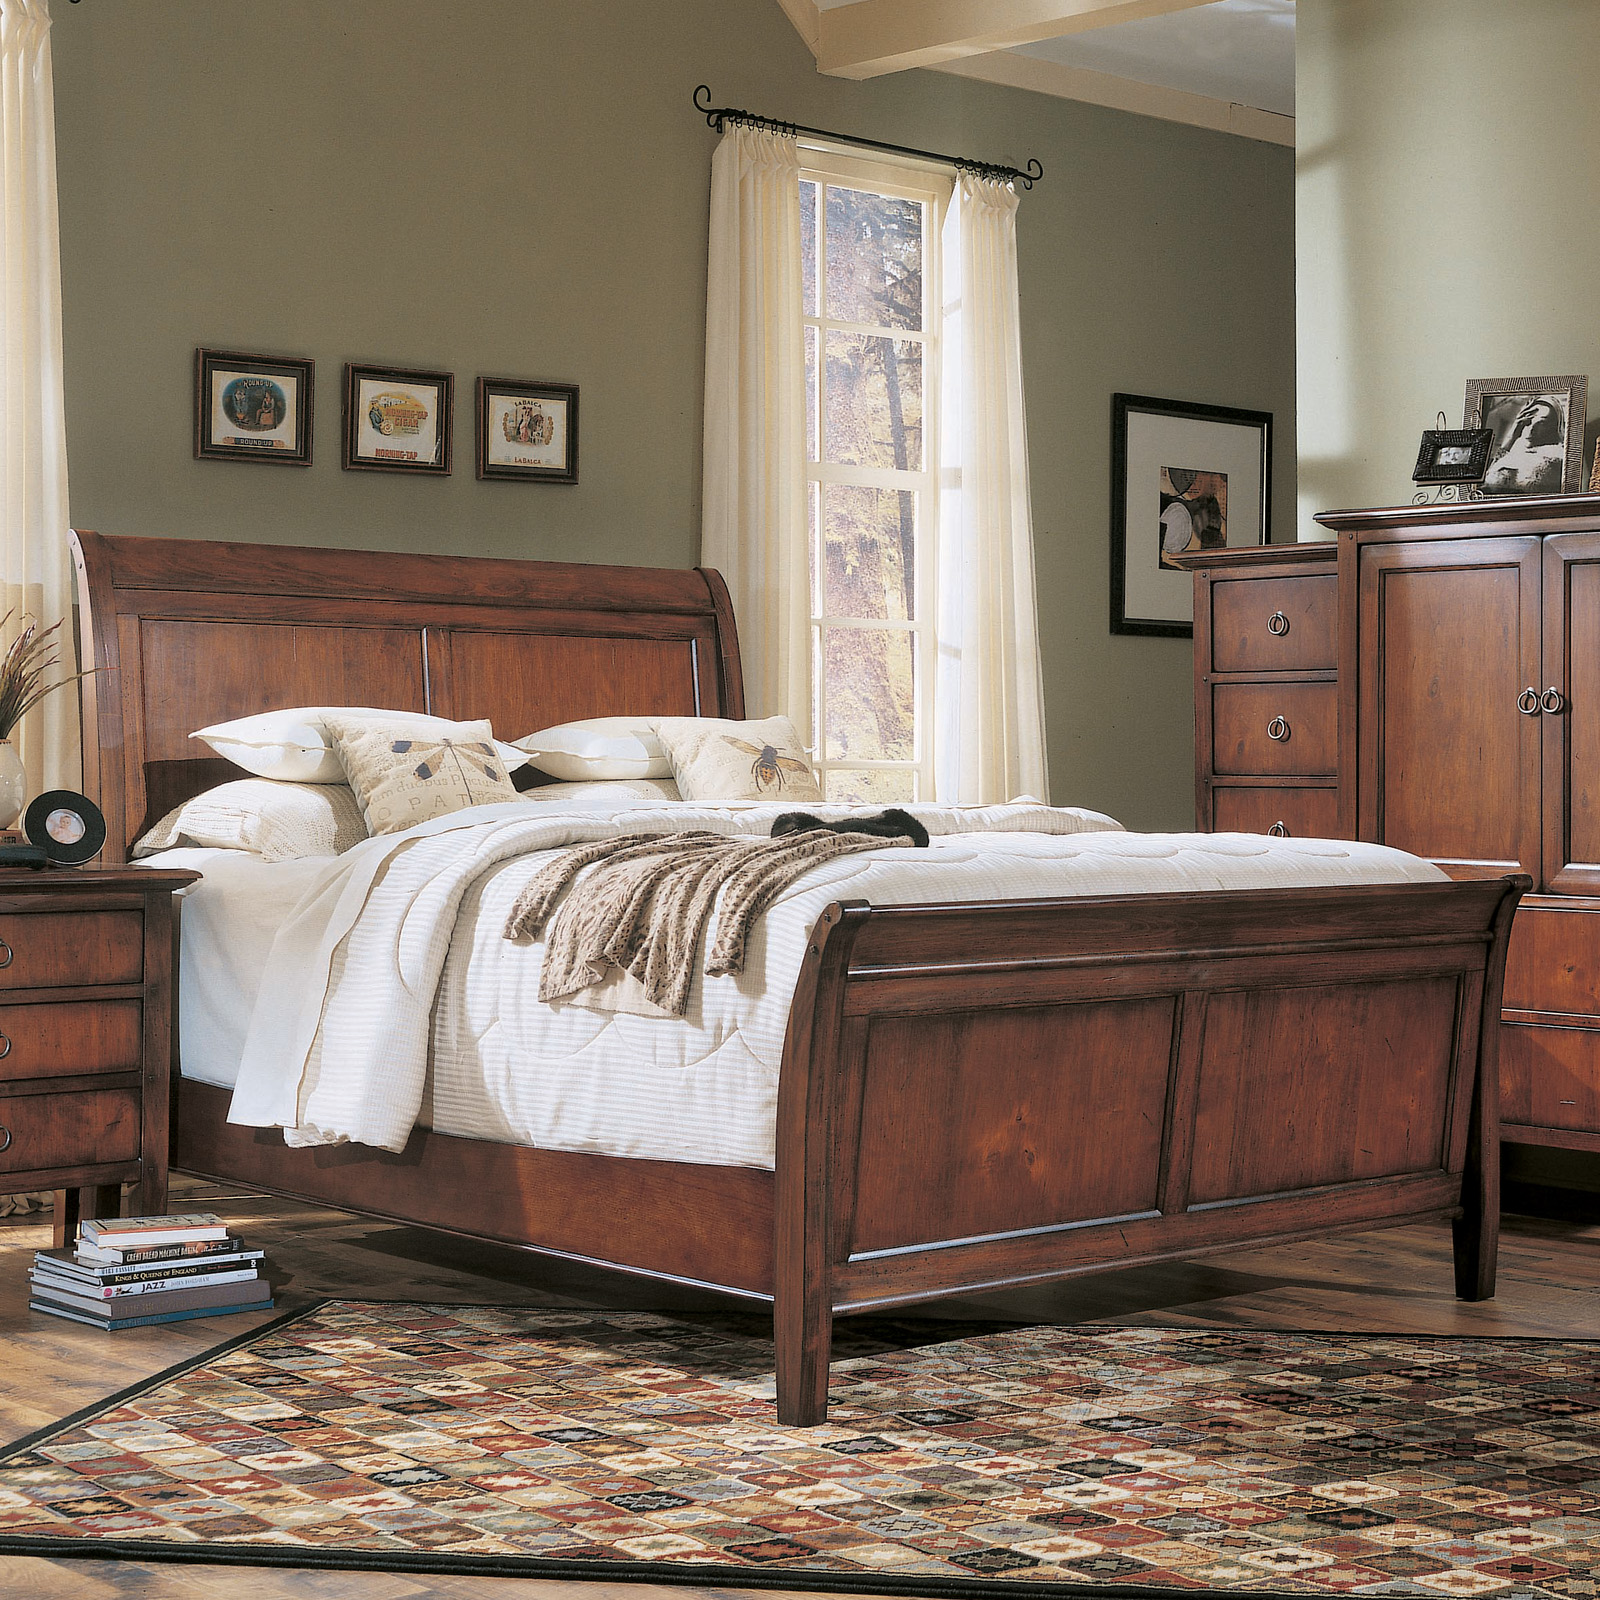 50 Sleigh Bed Inspirations For A Cozy Modern Bedroom: Hooker Furniture Albany Park Sleigh Bed At Hayneedle